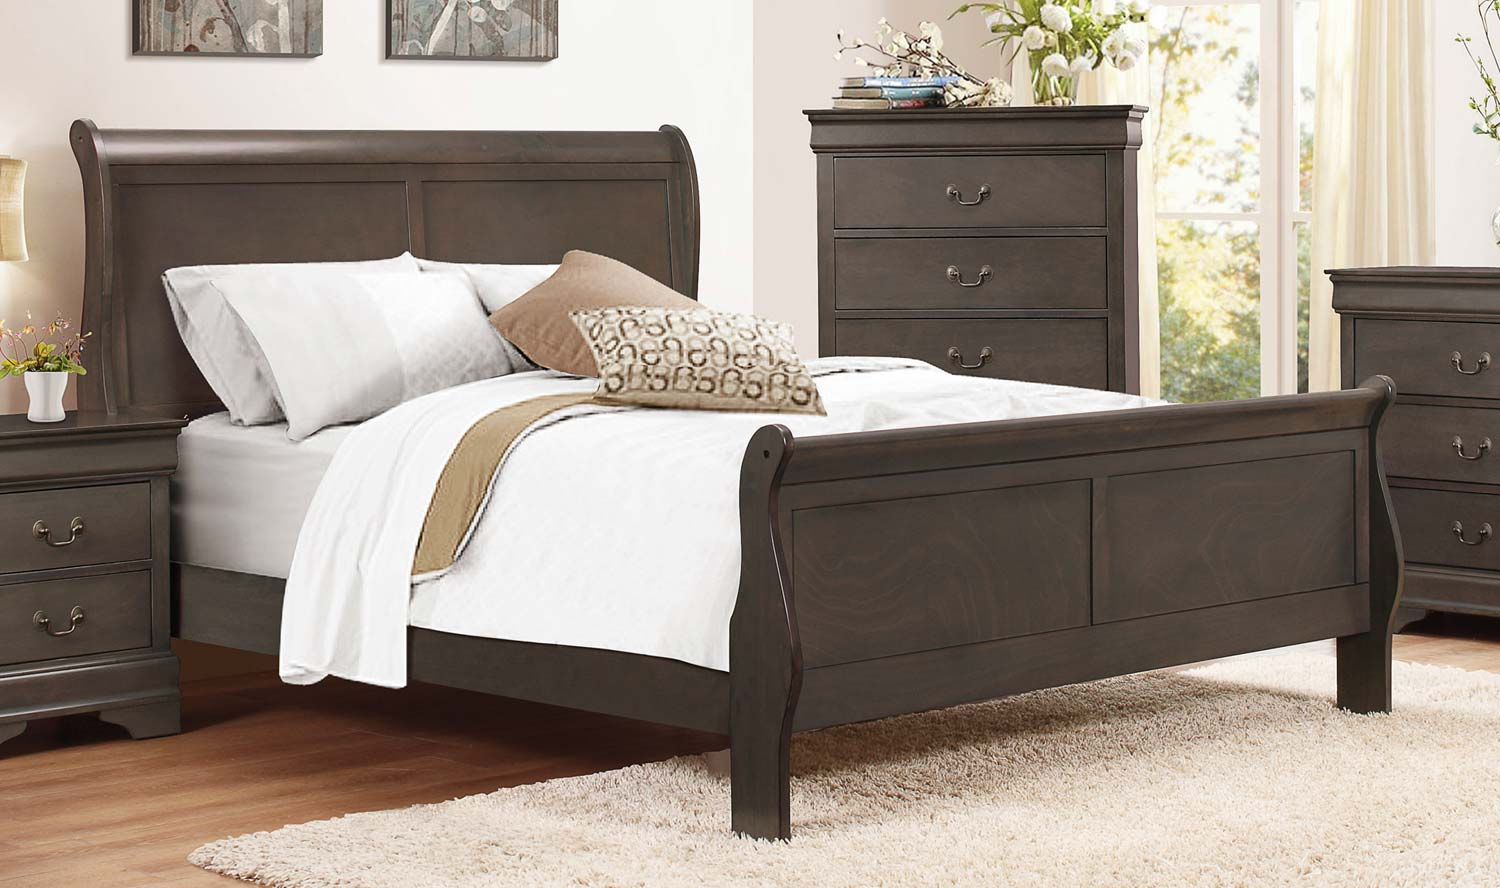 Bedroom Set - Dark Wood